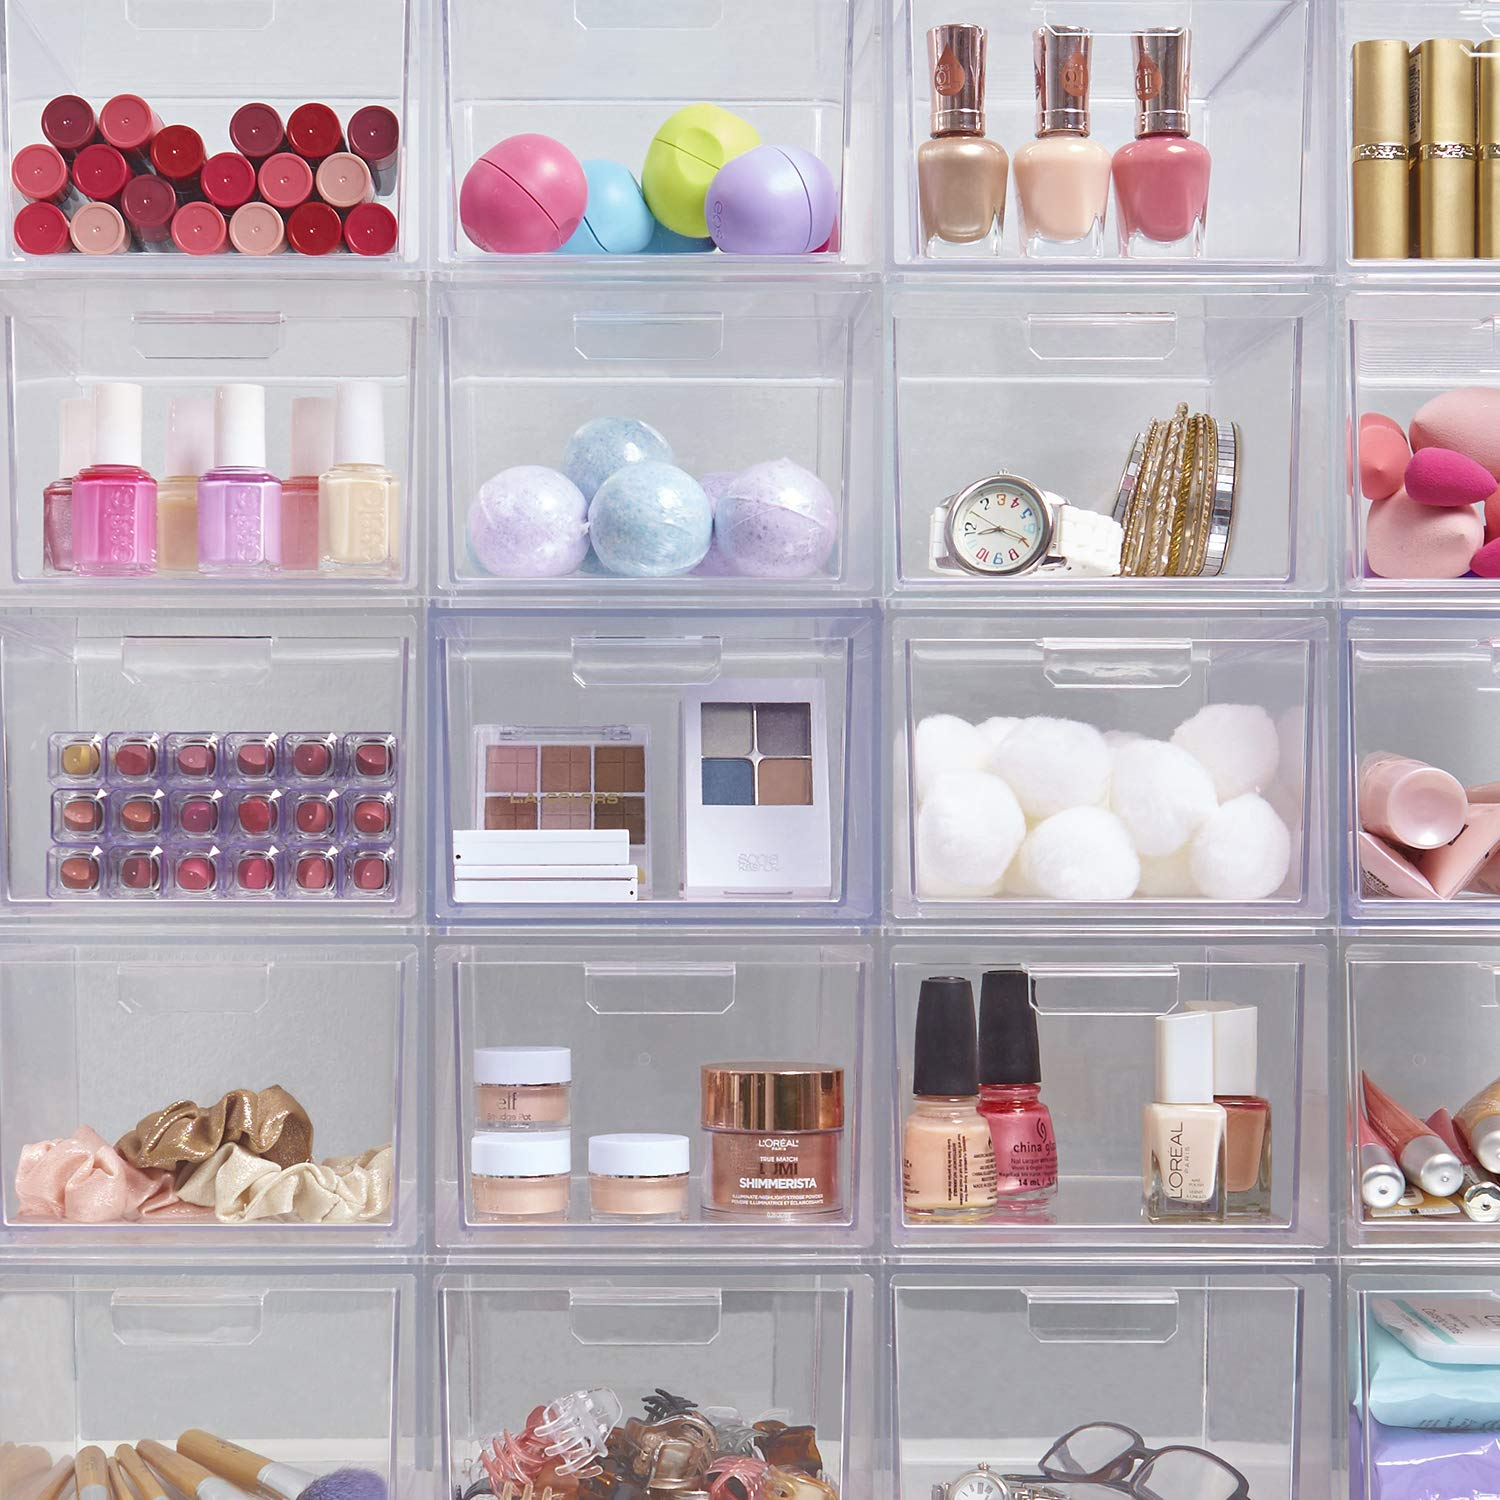 Stackable Cosmetic Organizer Drawers Sizes - 22 Awesome Amazon Finds to Help Make Life Easier